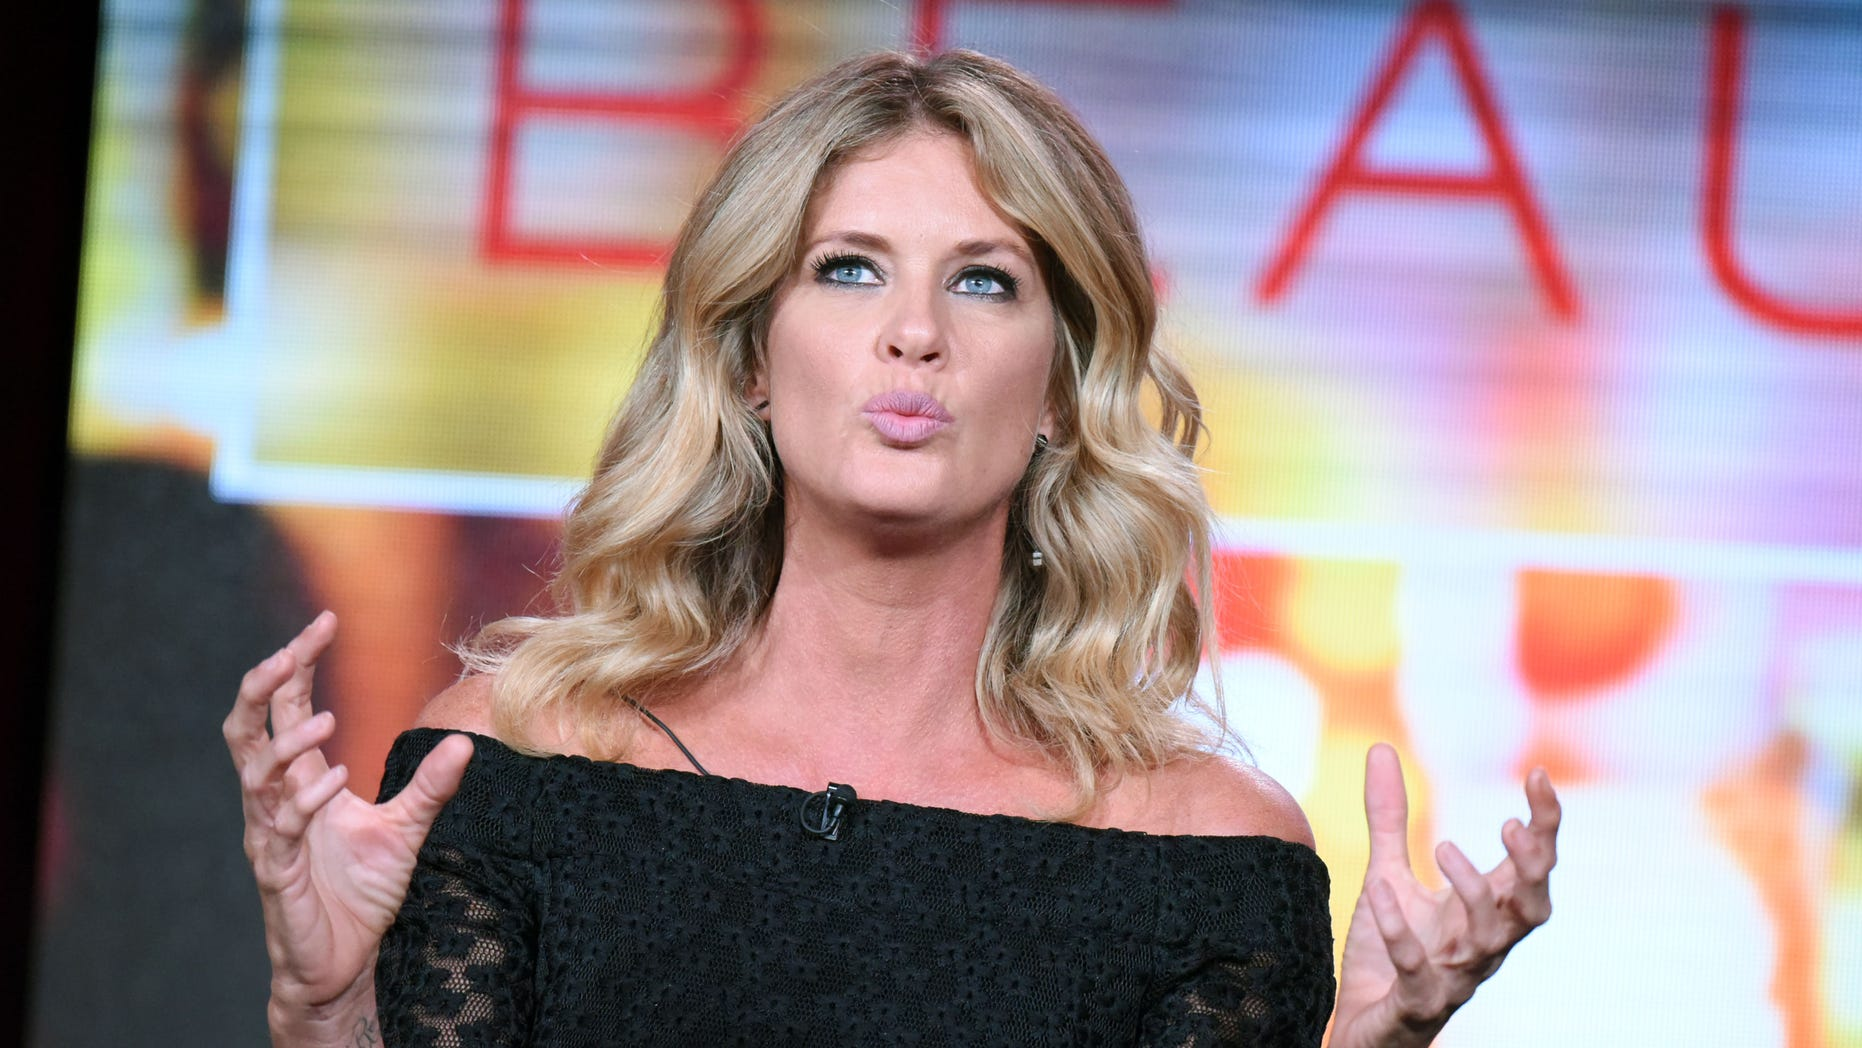 """Rachel Hunter speaks during the """"Rachel Hunter's Tour of Beauty"""" panel at the Ovation 2016 Winter TCA on Tuesday, Jan. 5, 2016, in Pasadena, Calif. (Photo by Richard Shotwell/Invision/AP)"""